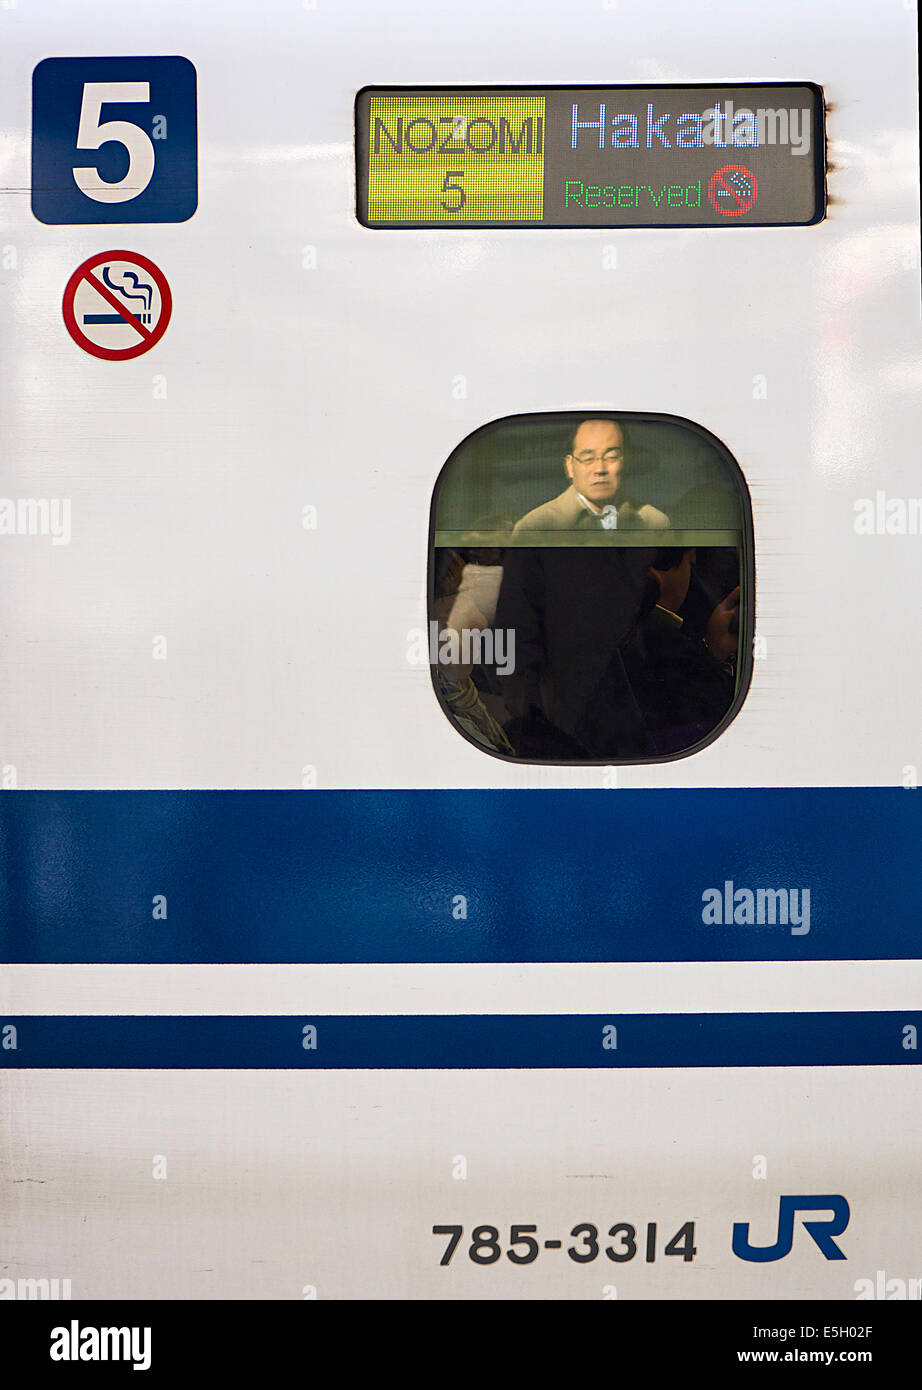 Shinkansen train at Kyoto railway station, Japan. - Stock Image